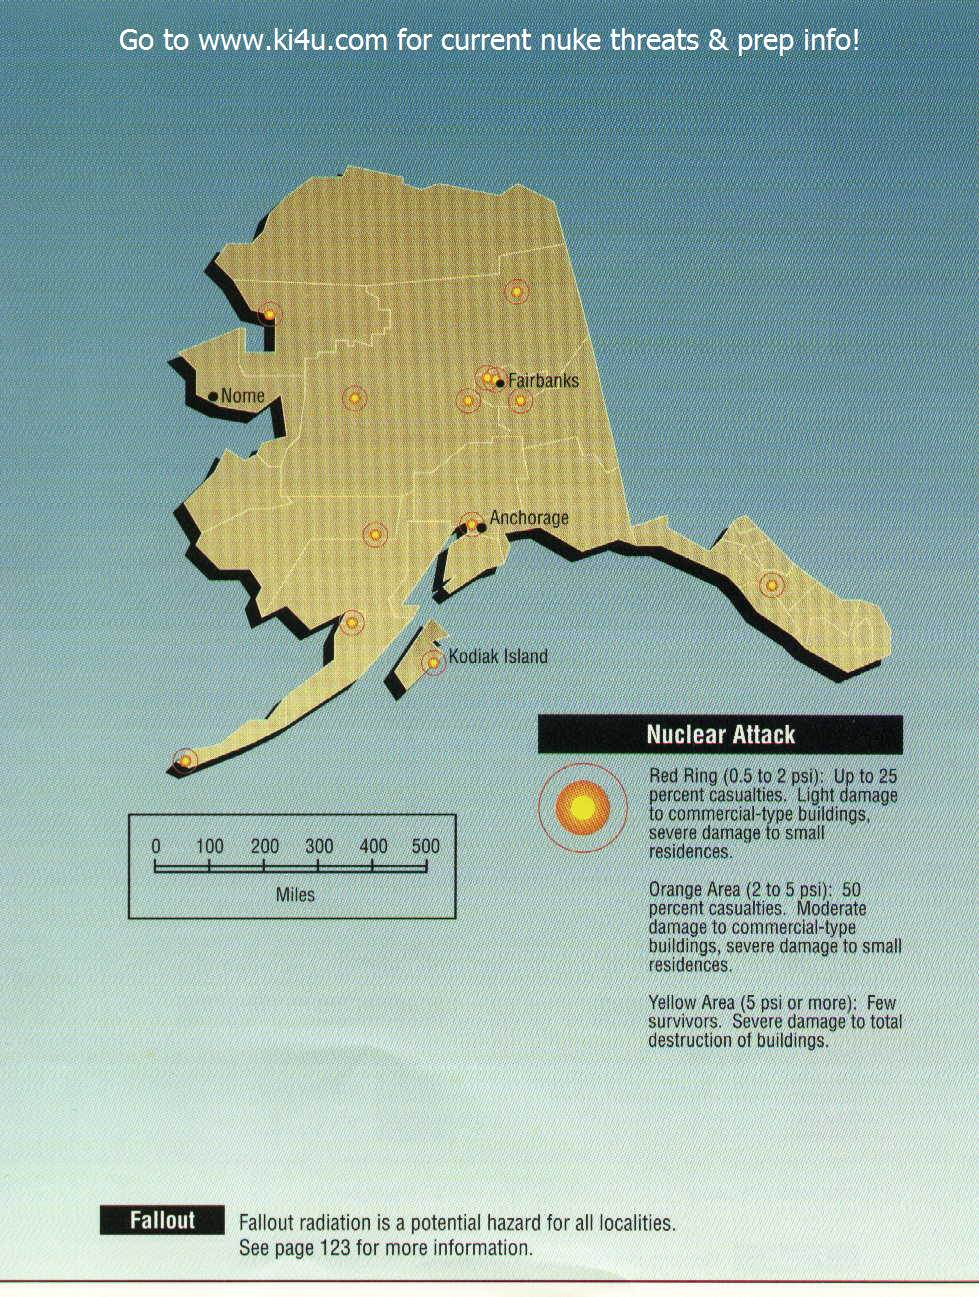 Nuclear War Fallout Shelter Survival Info For Alaska With FEMA - Us nuclear war fallout map